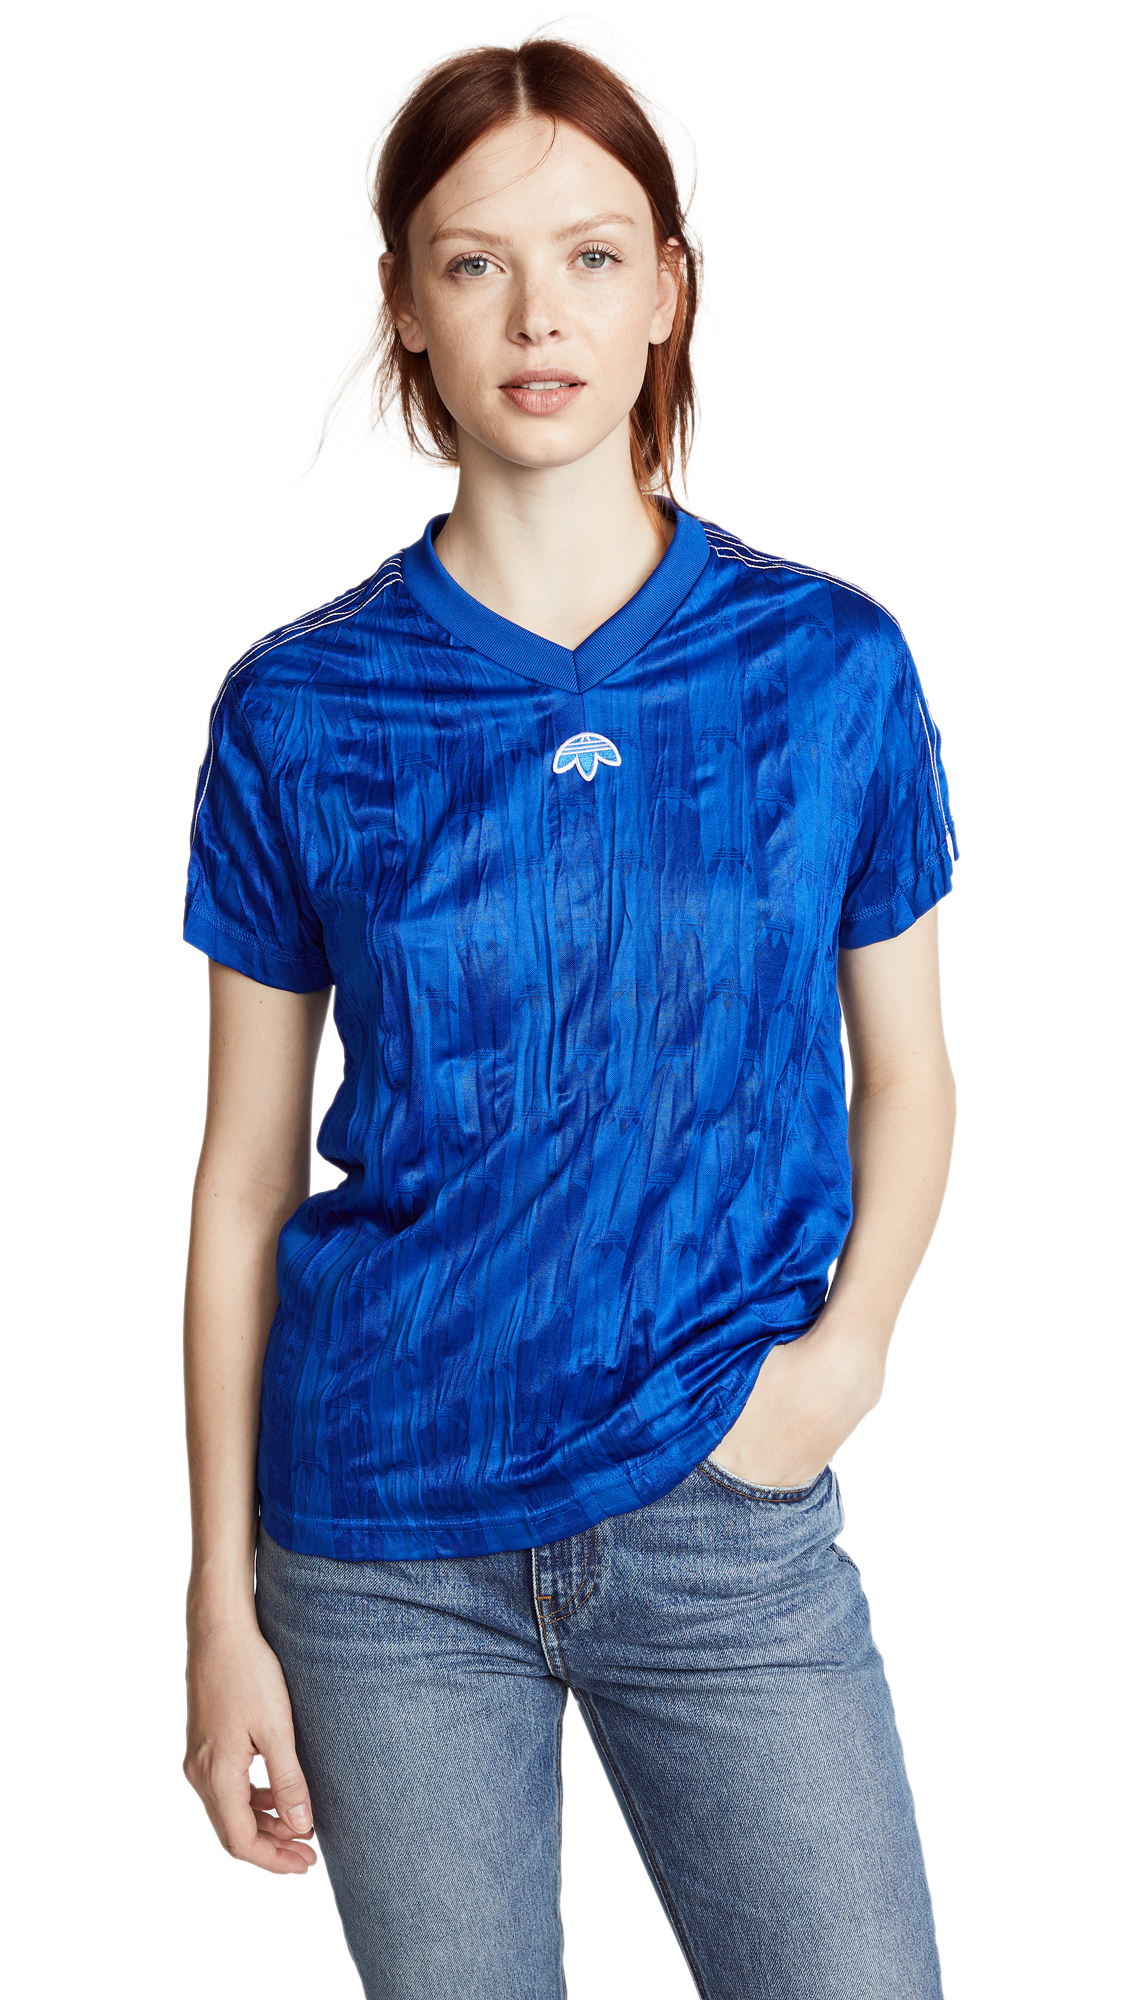 ADIDAS ORIGINALS BY ALEXANDER WANG Jersey Tee, Poblue/White